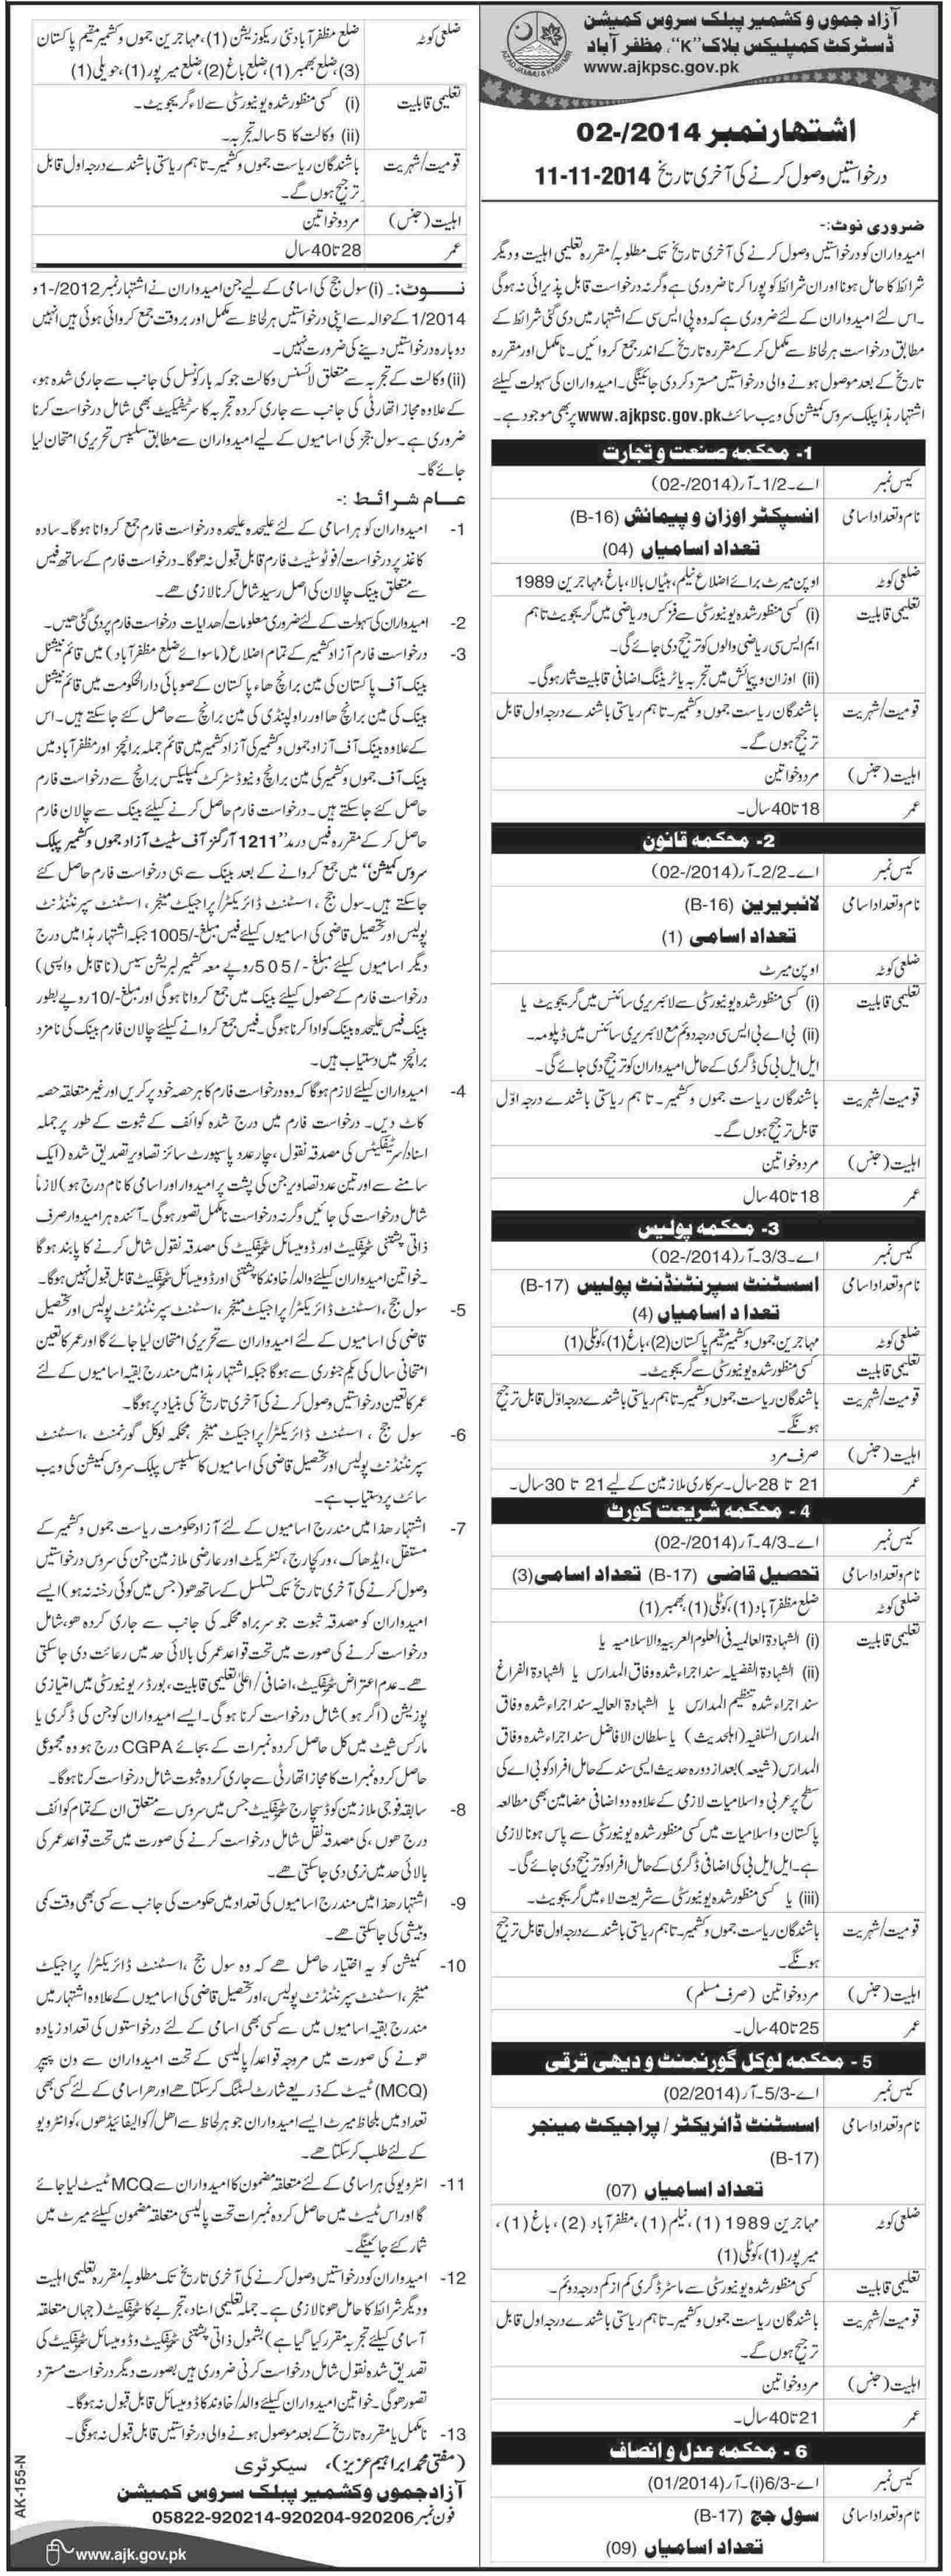 AJK PSC Jobs 2014 Inspector, Assistant Superintendent Police, Civil Judge Form